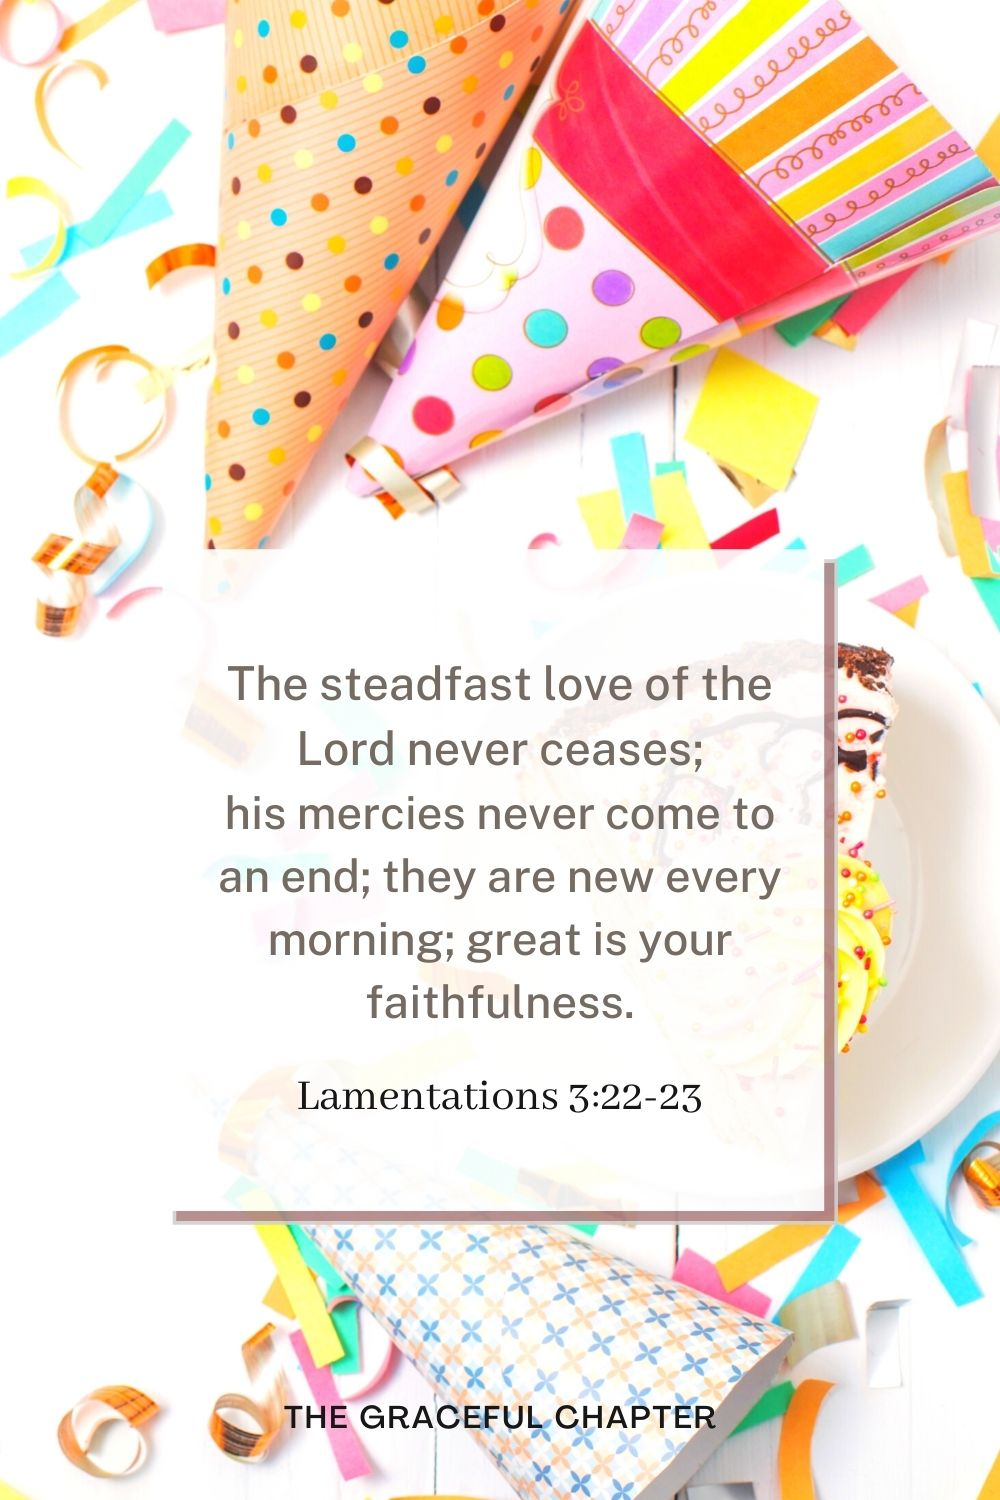 birthday bible verses - The steadfast love of the Lord never ceases; his mercies never come to an end;they are new every morning; great is your faithfulness. Lamentations 3:22-23